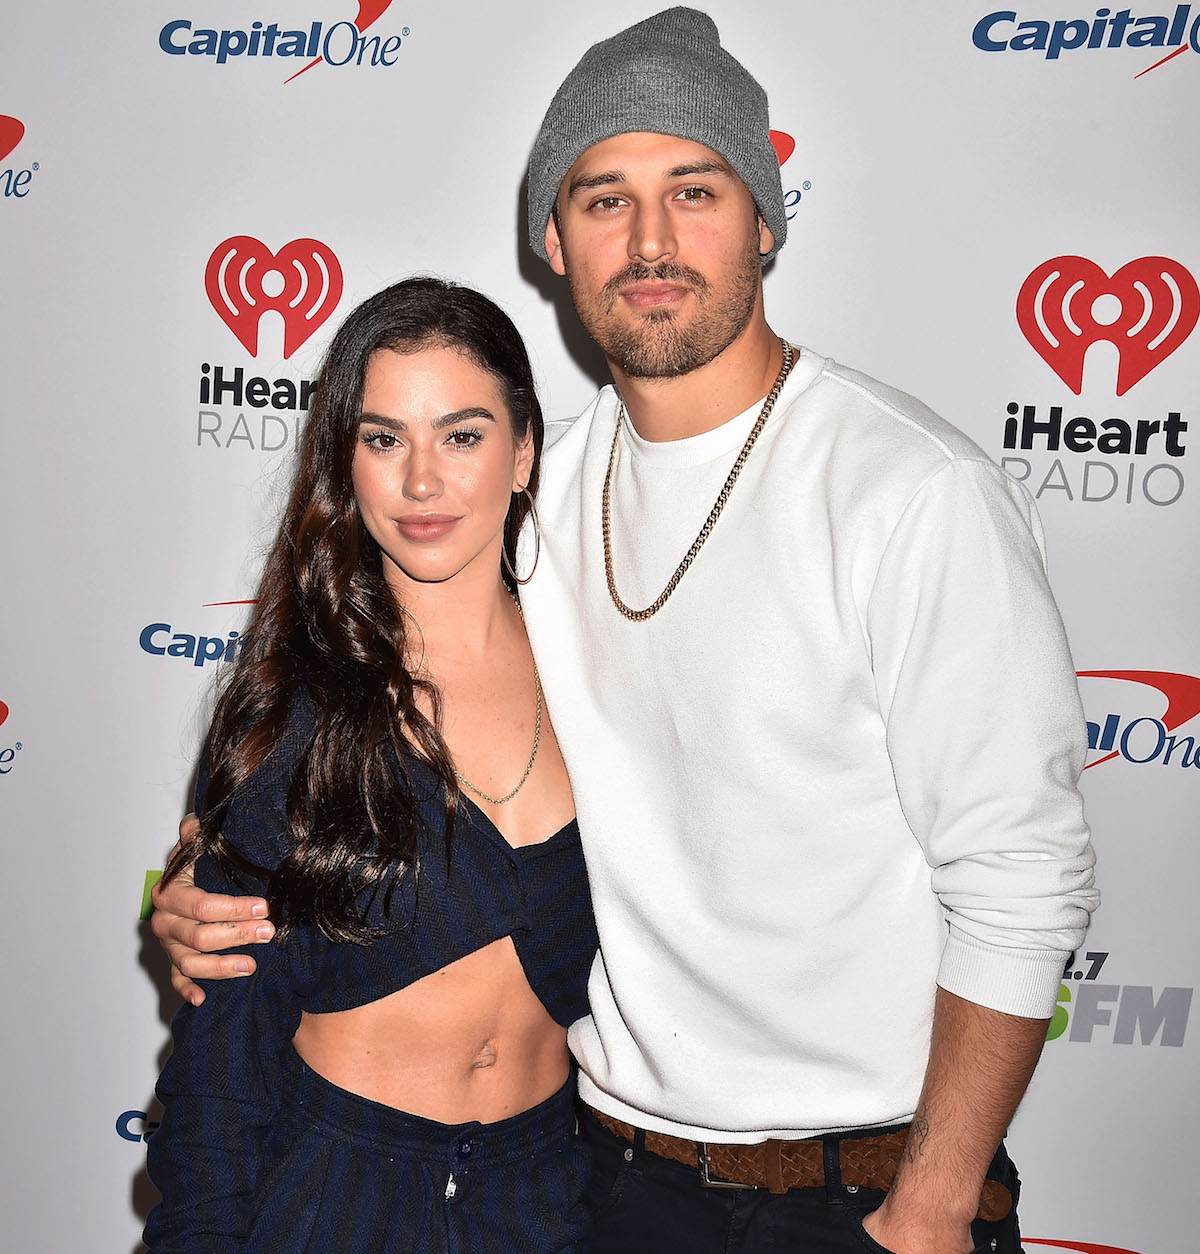 chrysti ane and ryan guzman come under fire